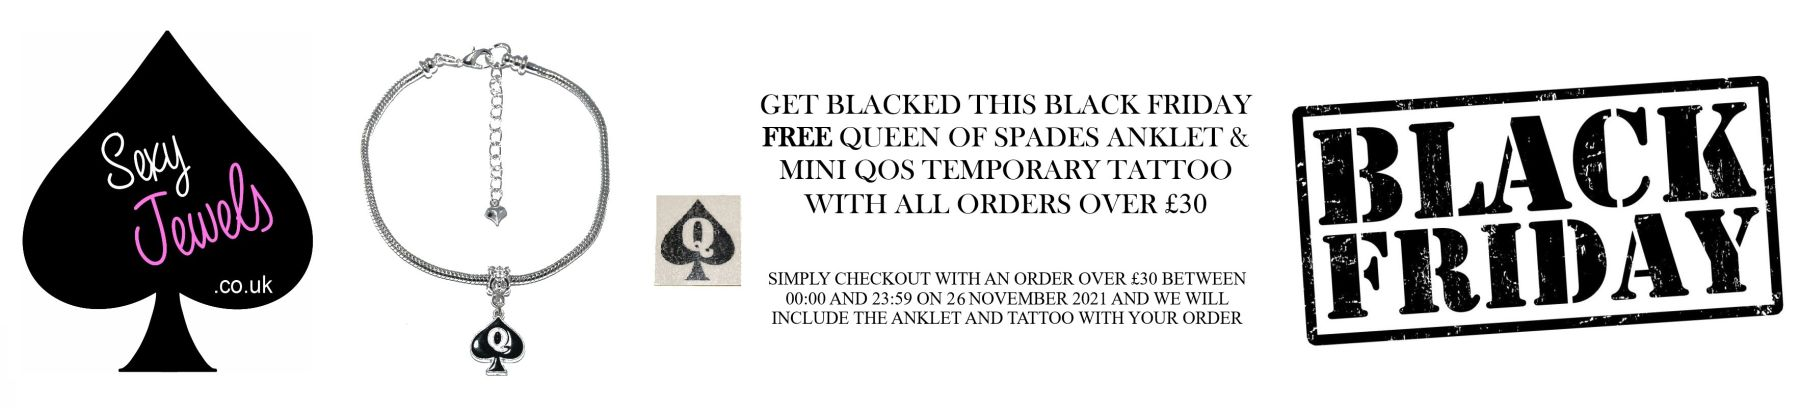 BLACK FRIDAY - Help your wife find a black boyfriend with this FREE Queen Of Spade anklet and tattoo